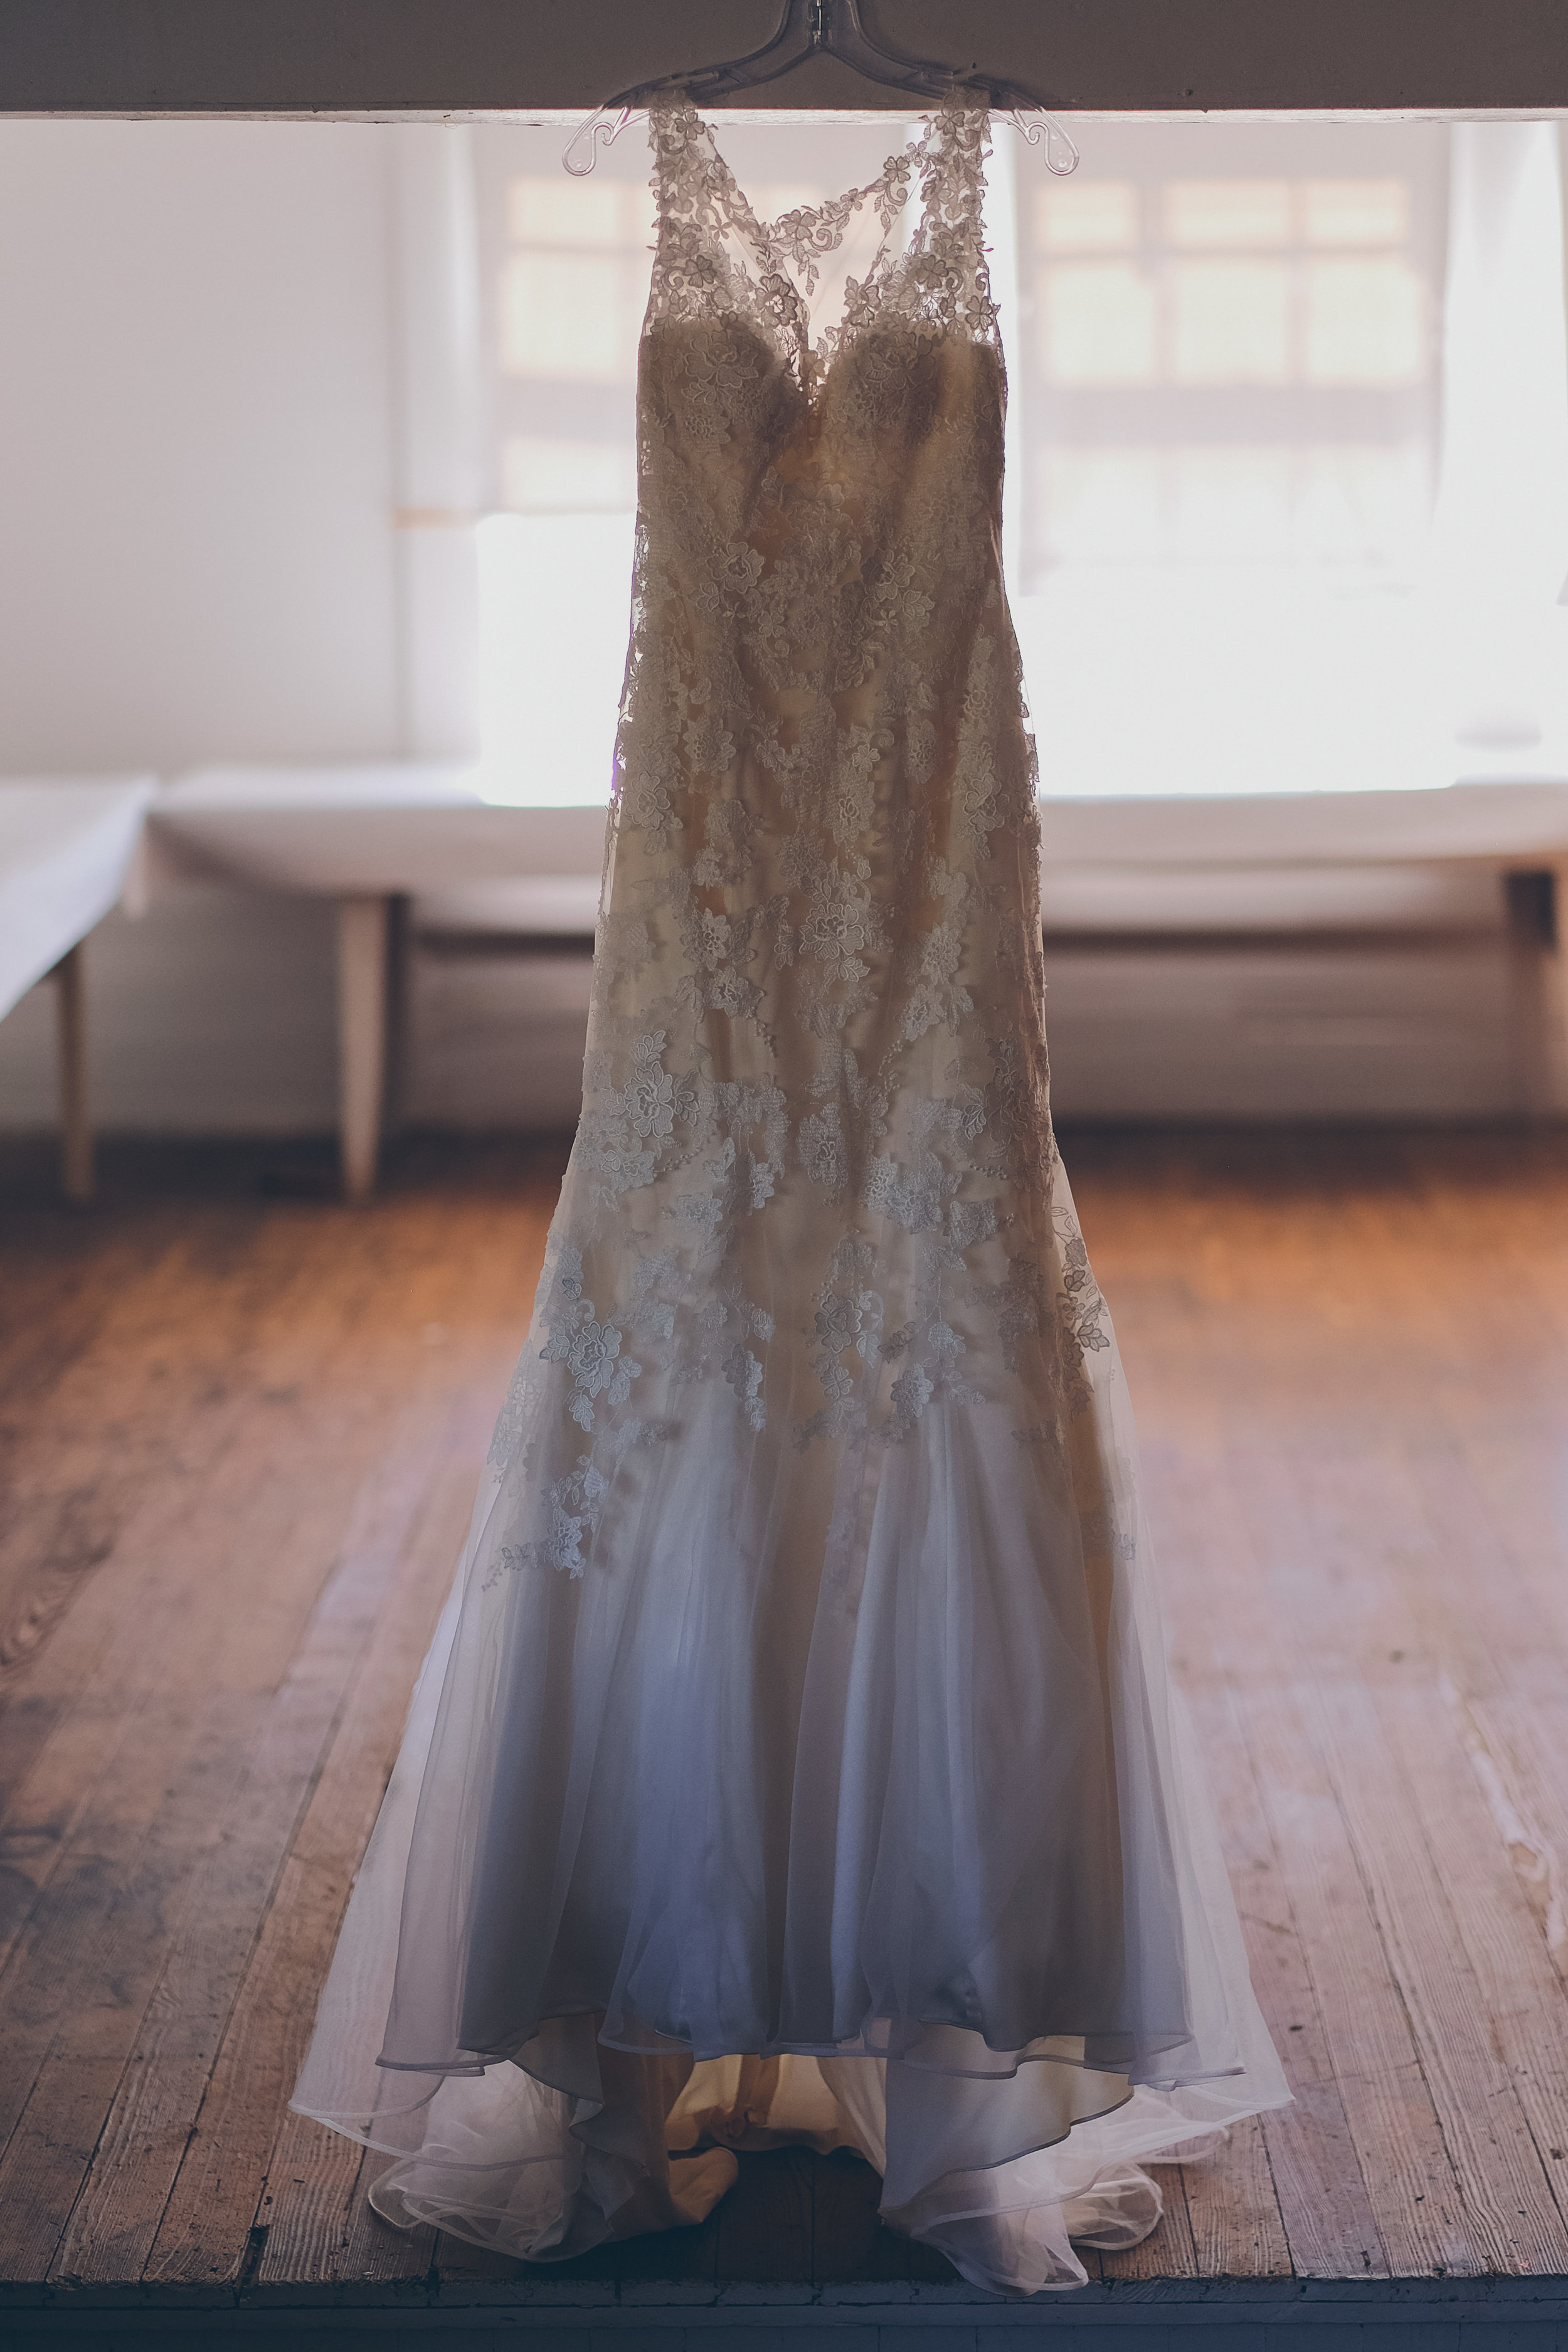 Wedding dress hanging in middle of empty room